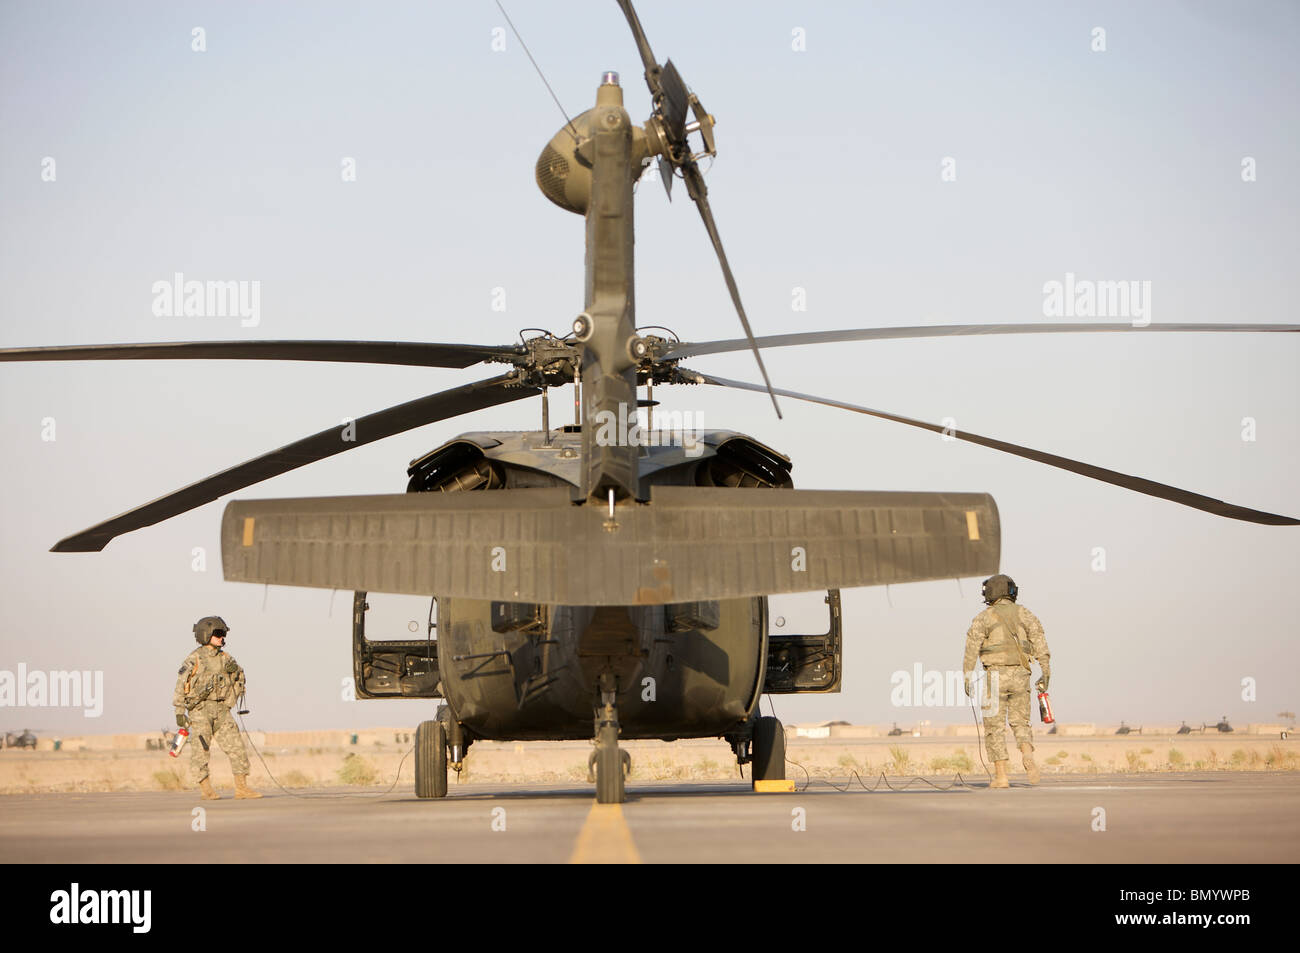 Crew Chiefs stand beside their UH-60L Black Hawk helicopter. - Stock Image